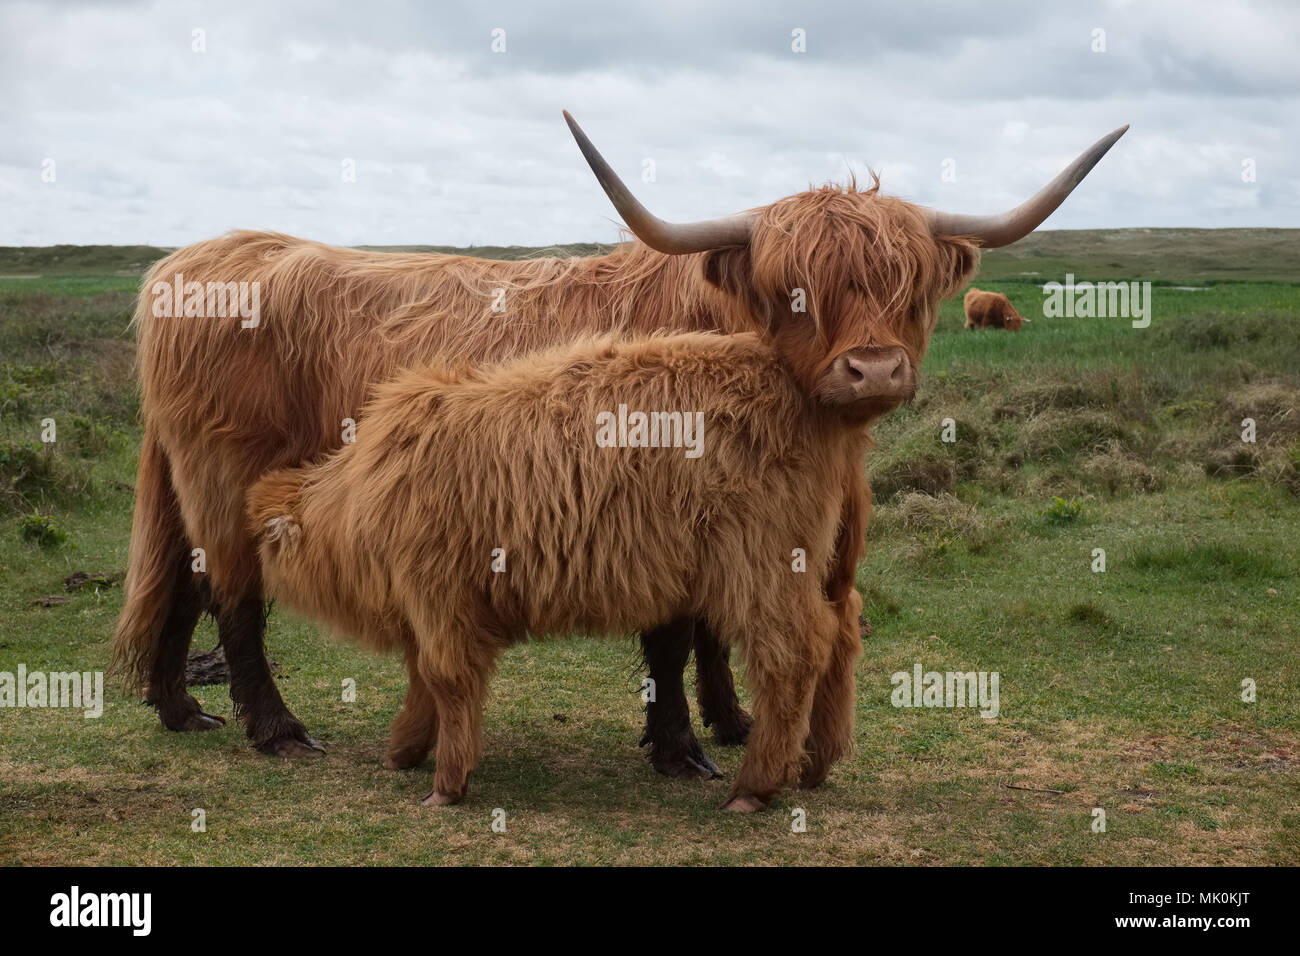 Illustration shows Scottish Highland cow and calf in the Dunes of Texel, the Netherlands. - Stock Image